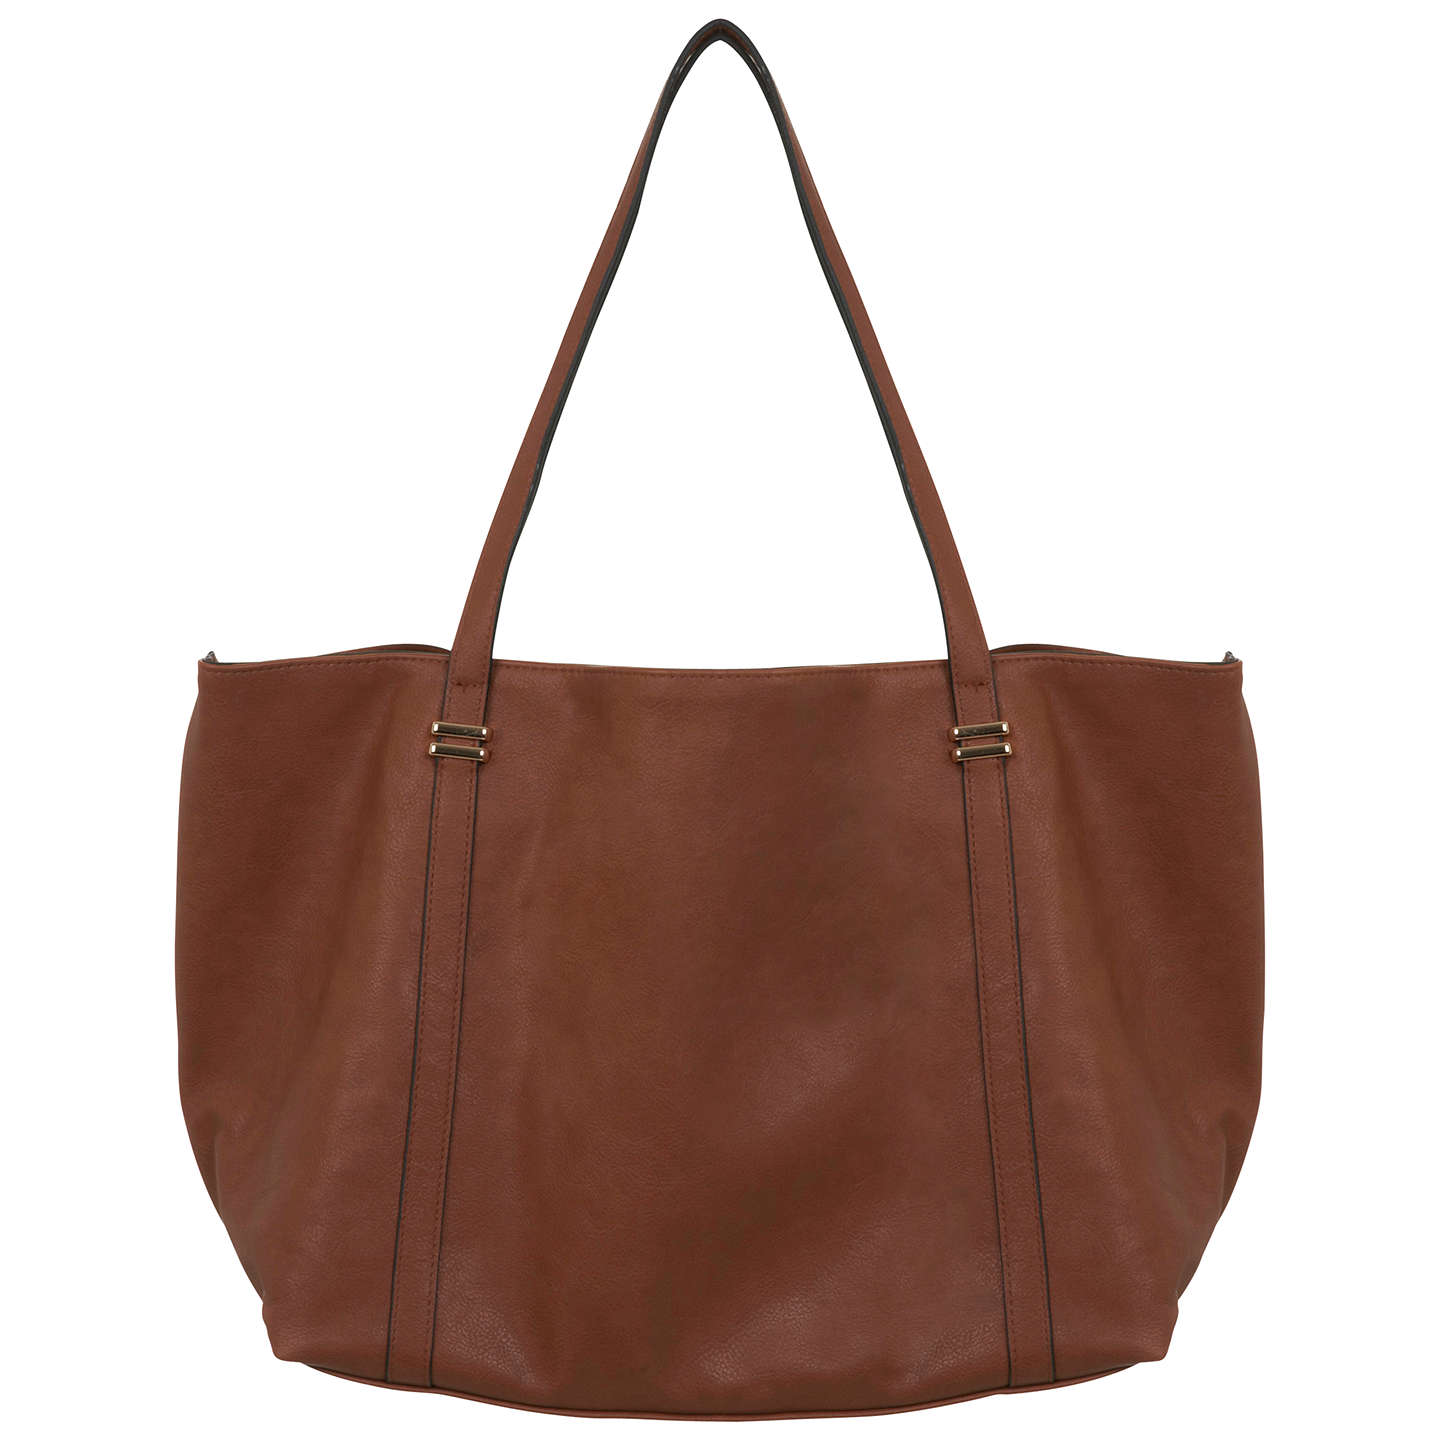 Miss Selfridge Per Bag Tan Online At Johnlewis